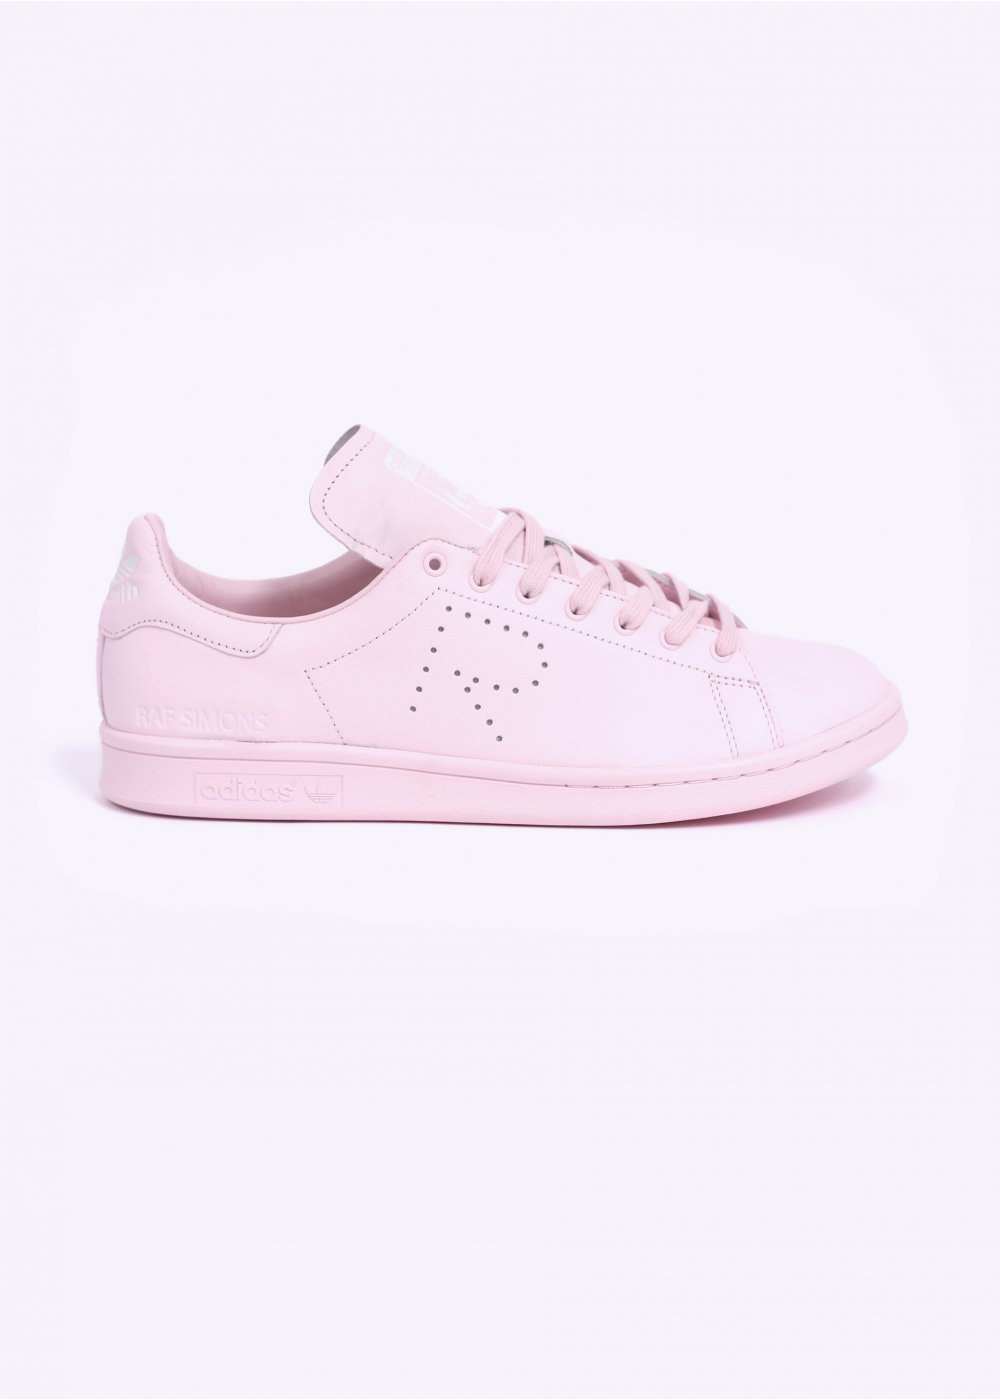 on sale 2b29e 86cf1 adidas Originals by Raf Simons STAN SMITH TRAINERS - PINK / WHITE